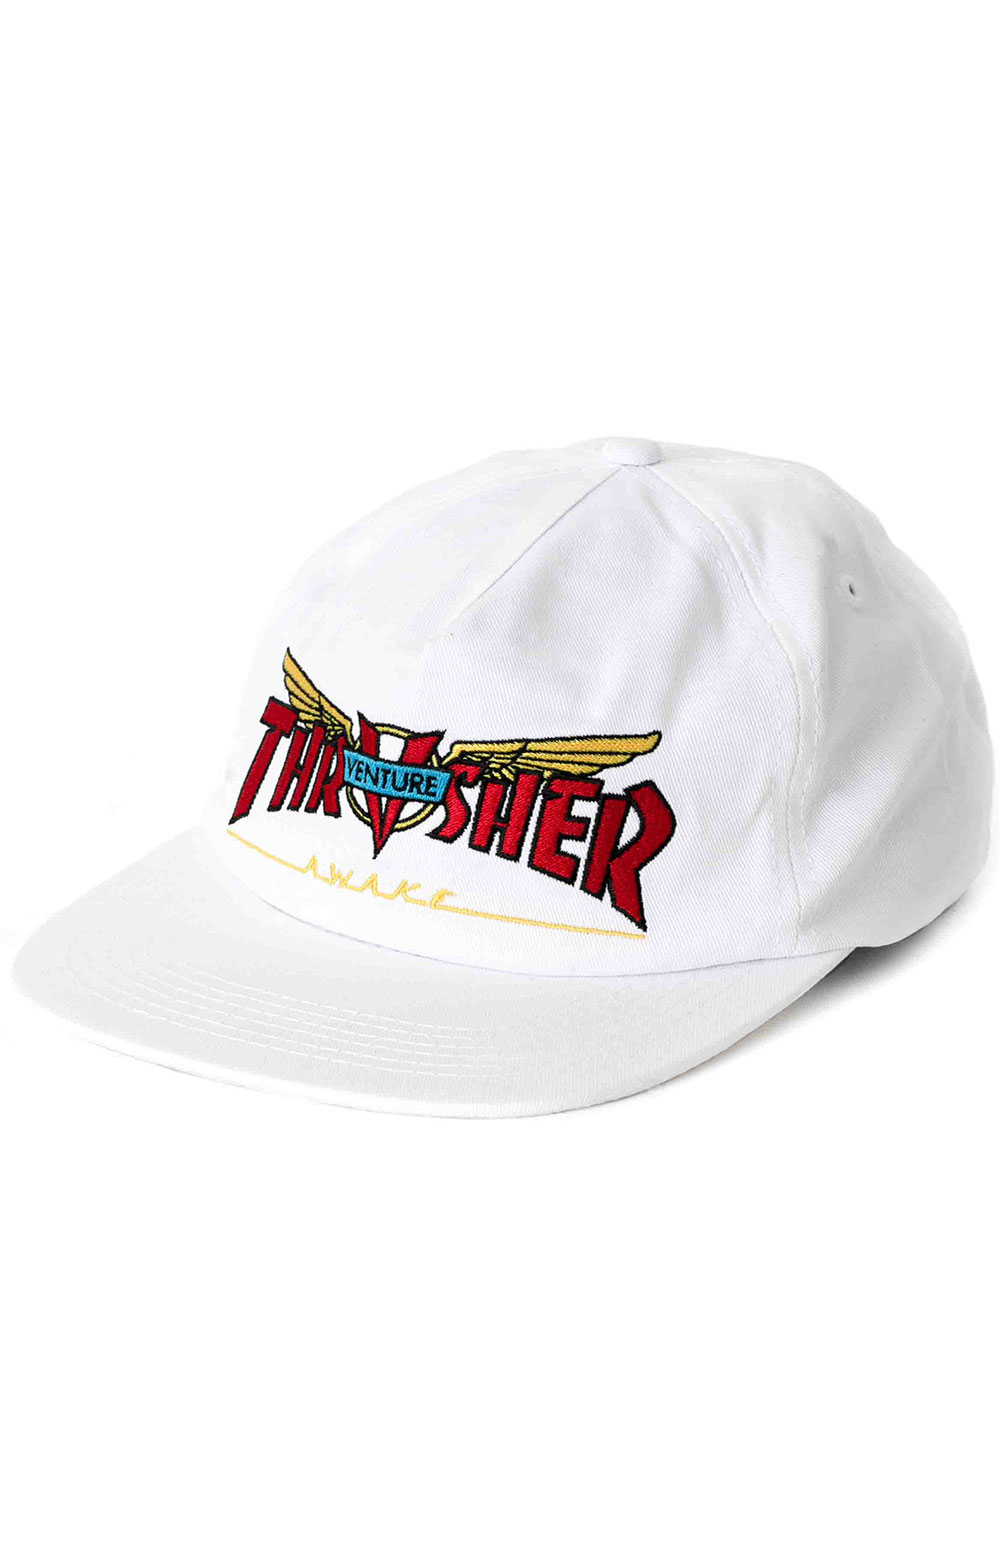 Venture Collab Snap-Back Hat - White